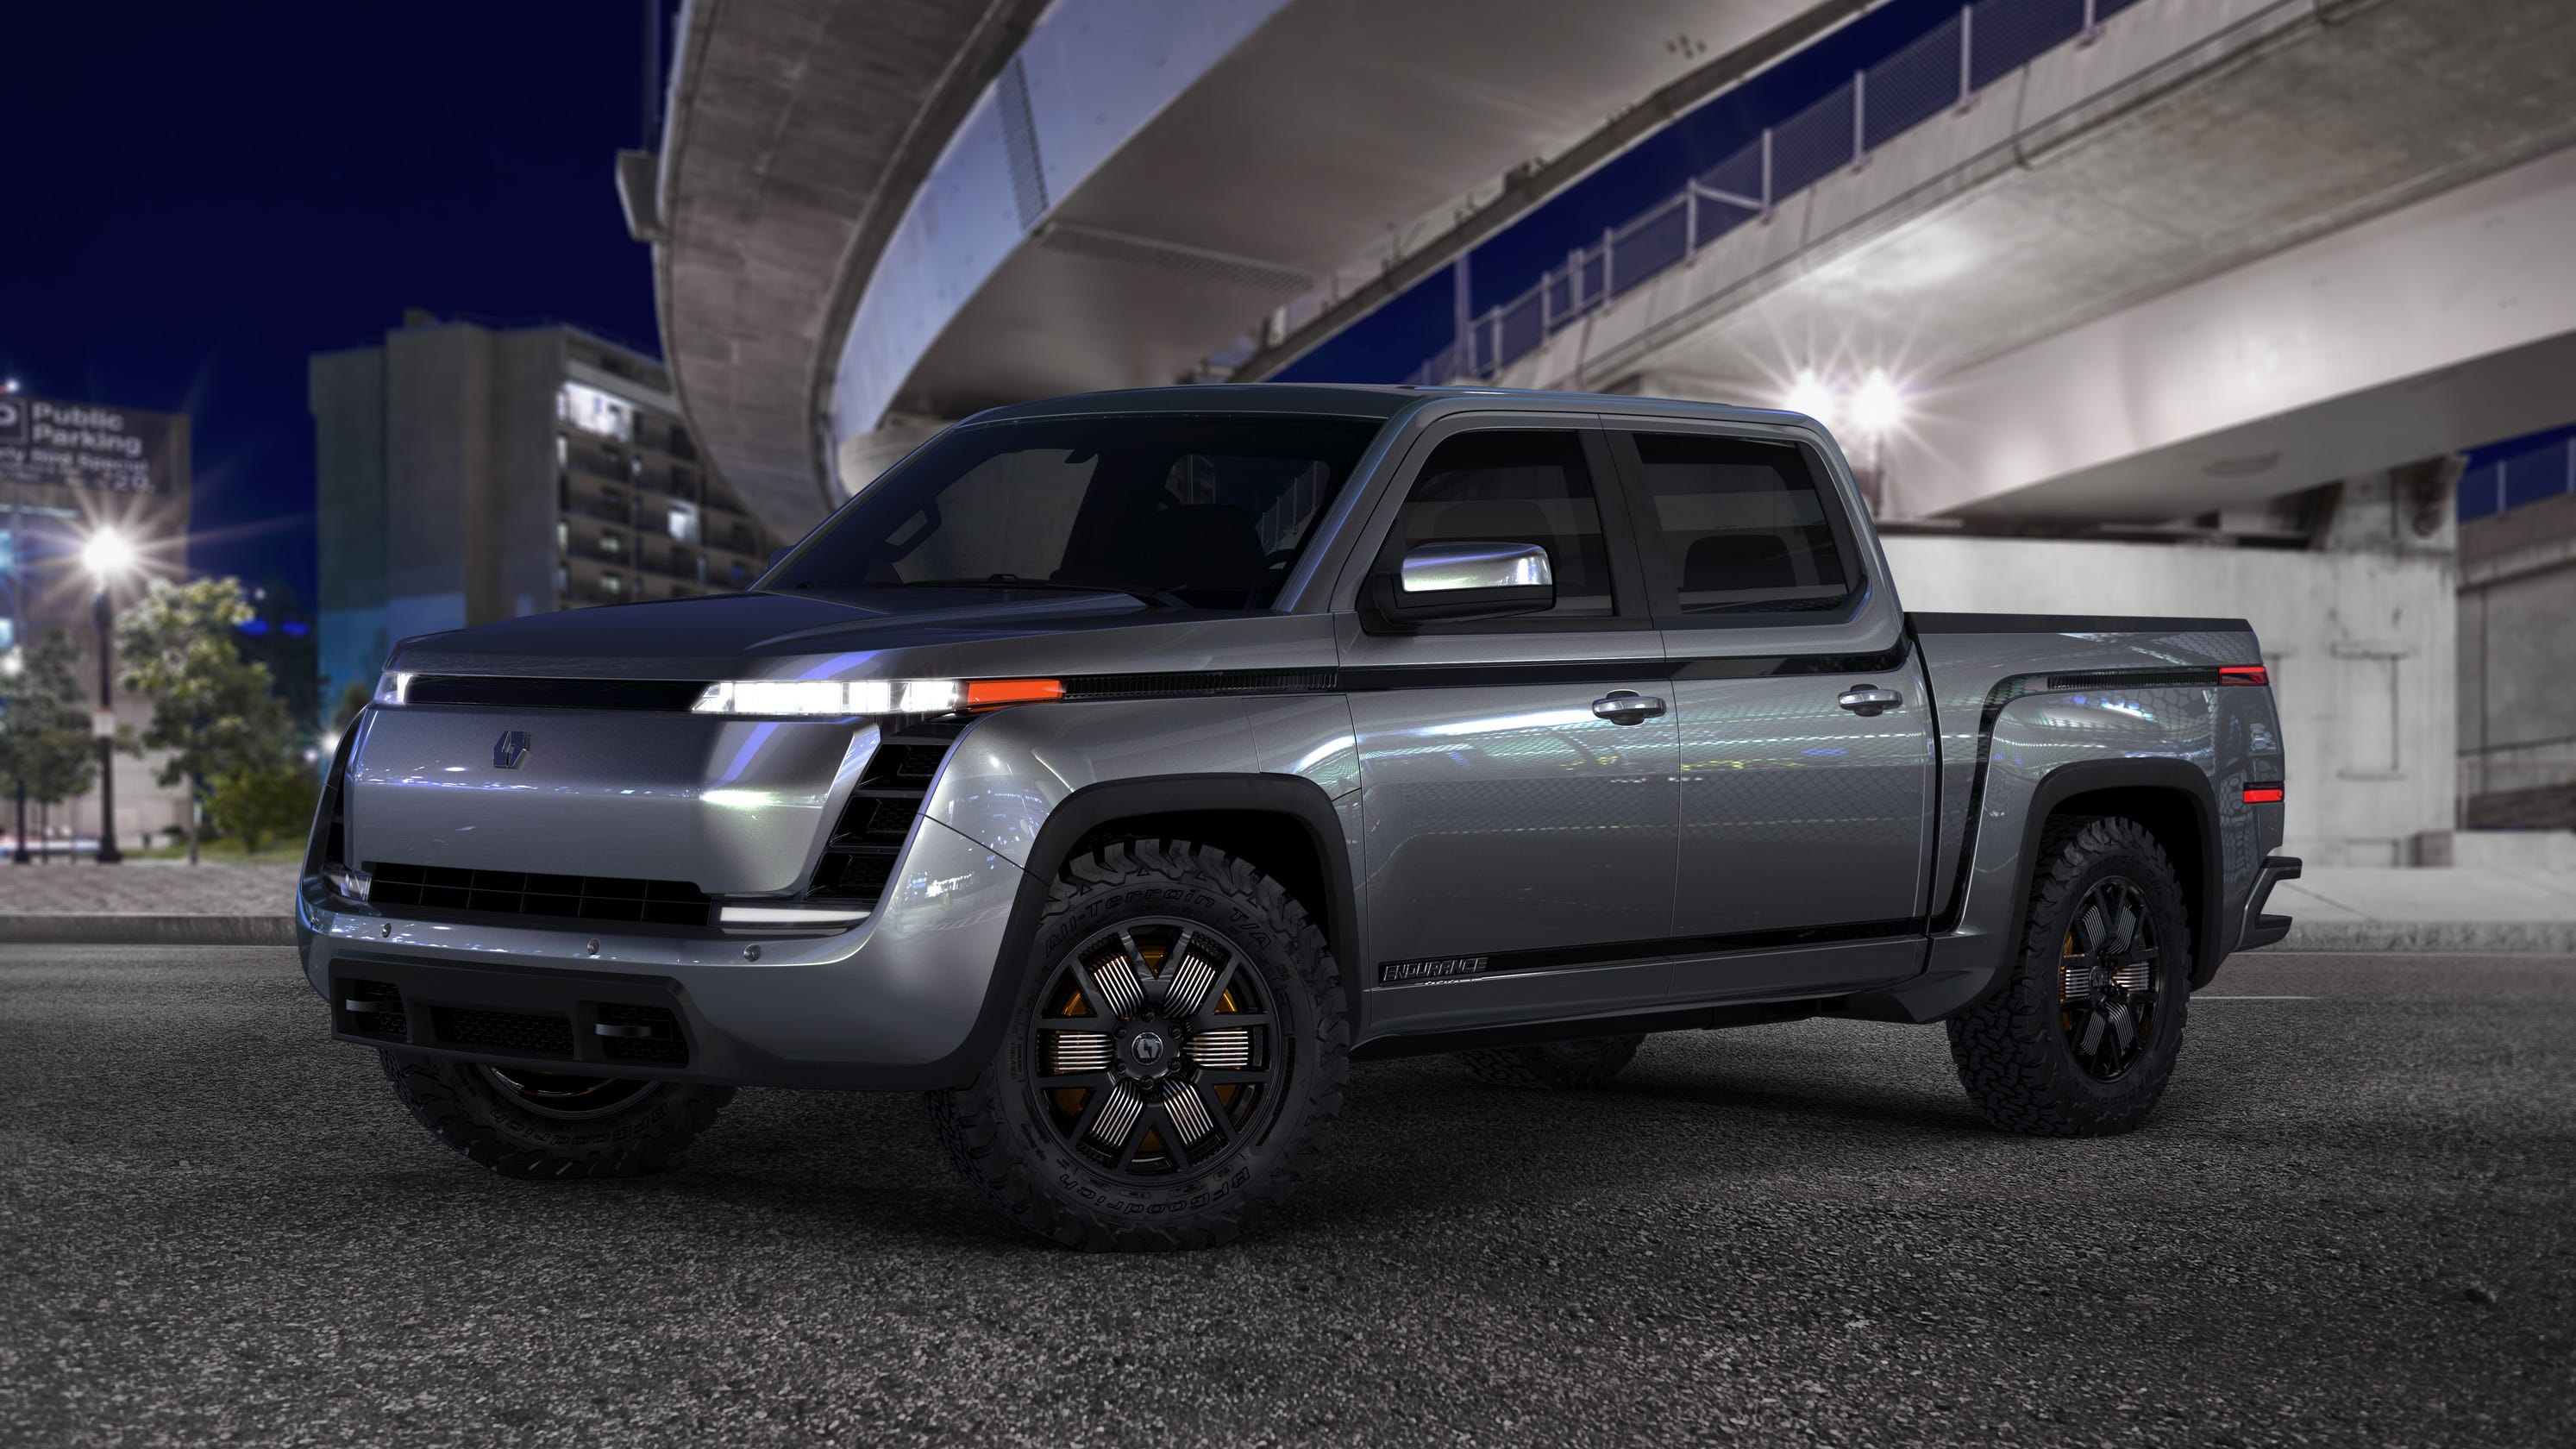 Lordstown Motors' all-electric Endurance will intensify the truck war